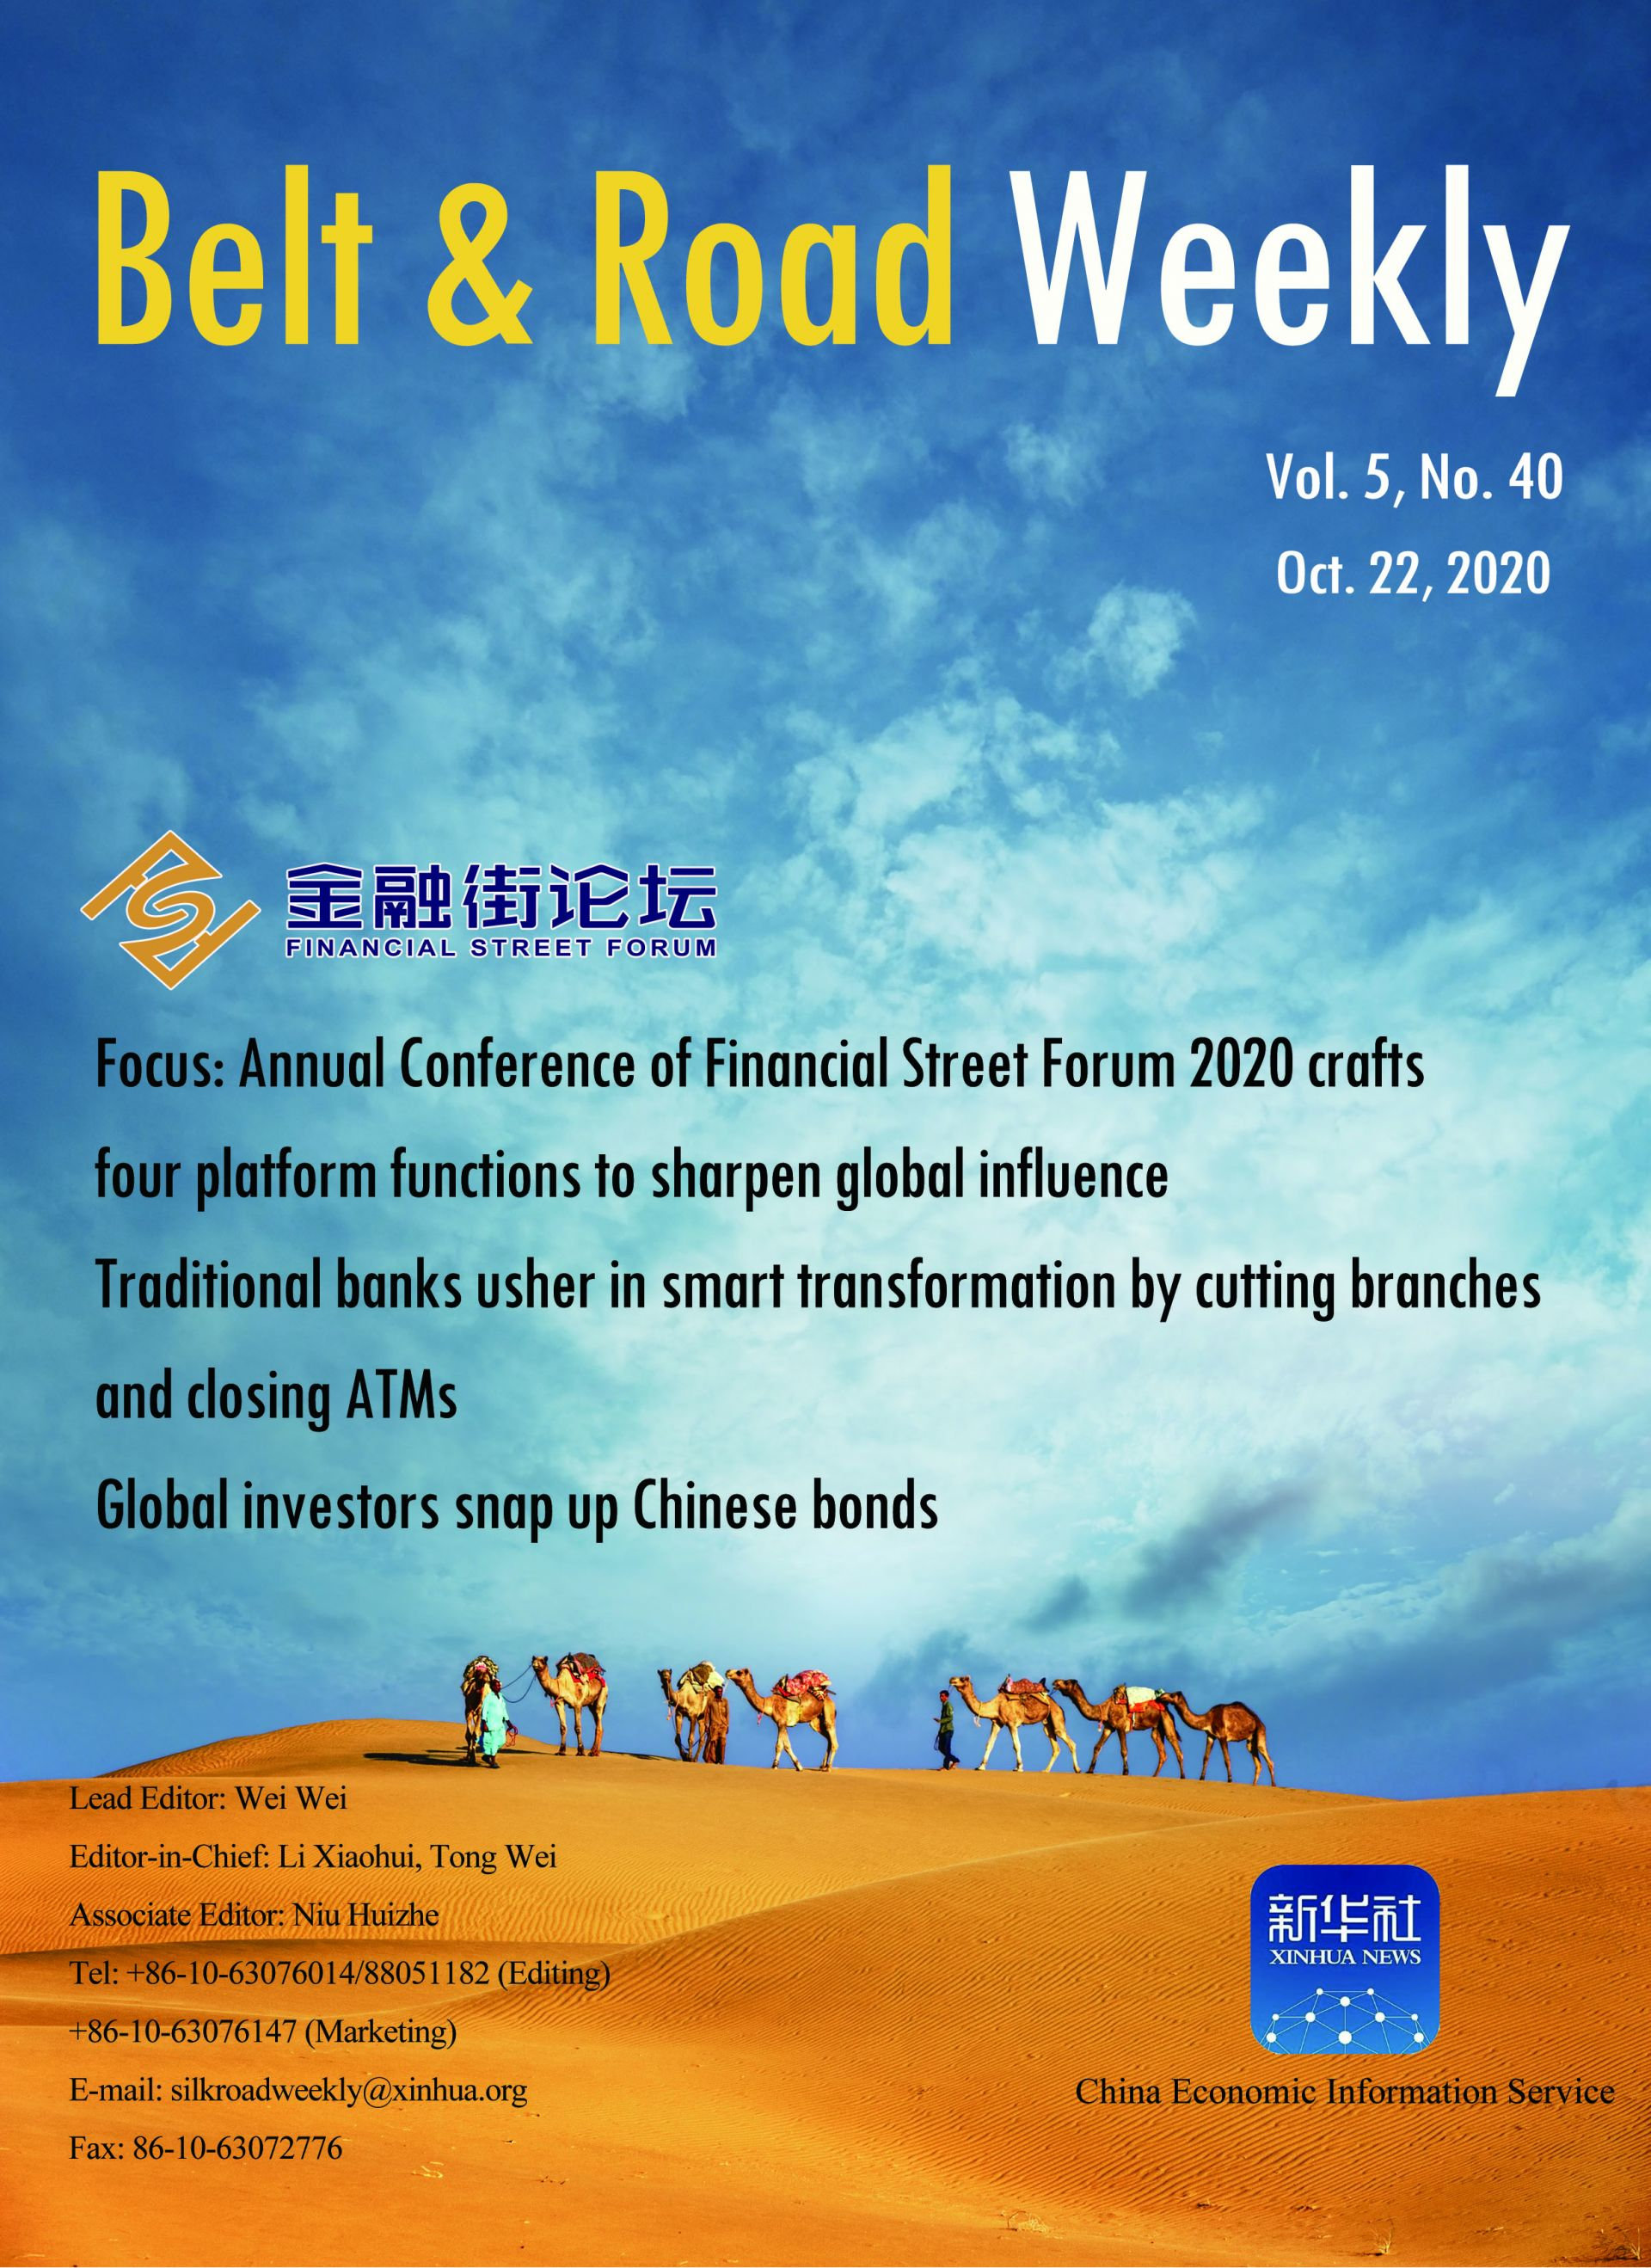 Belt and Road Weekly Vol. 5, No. 40